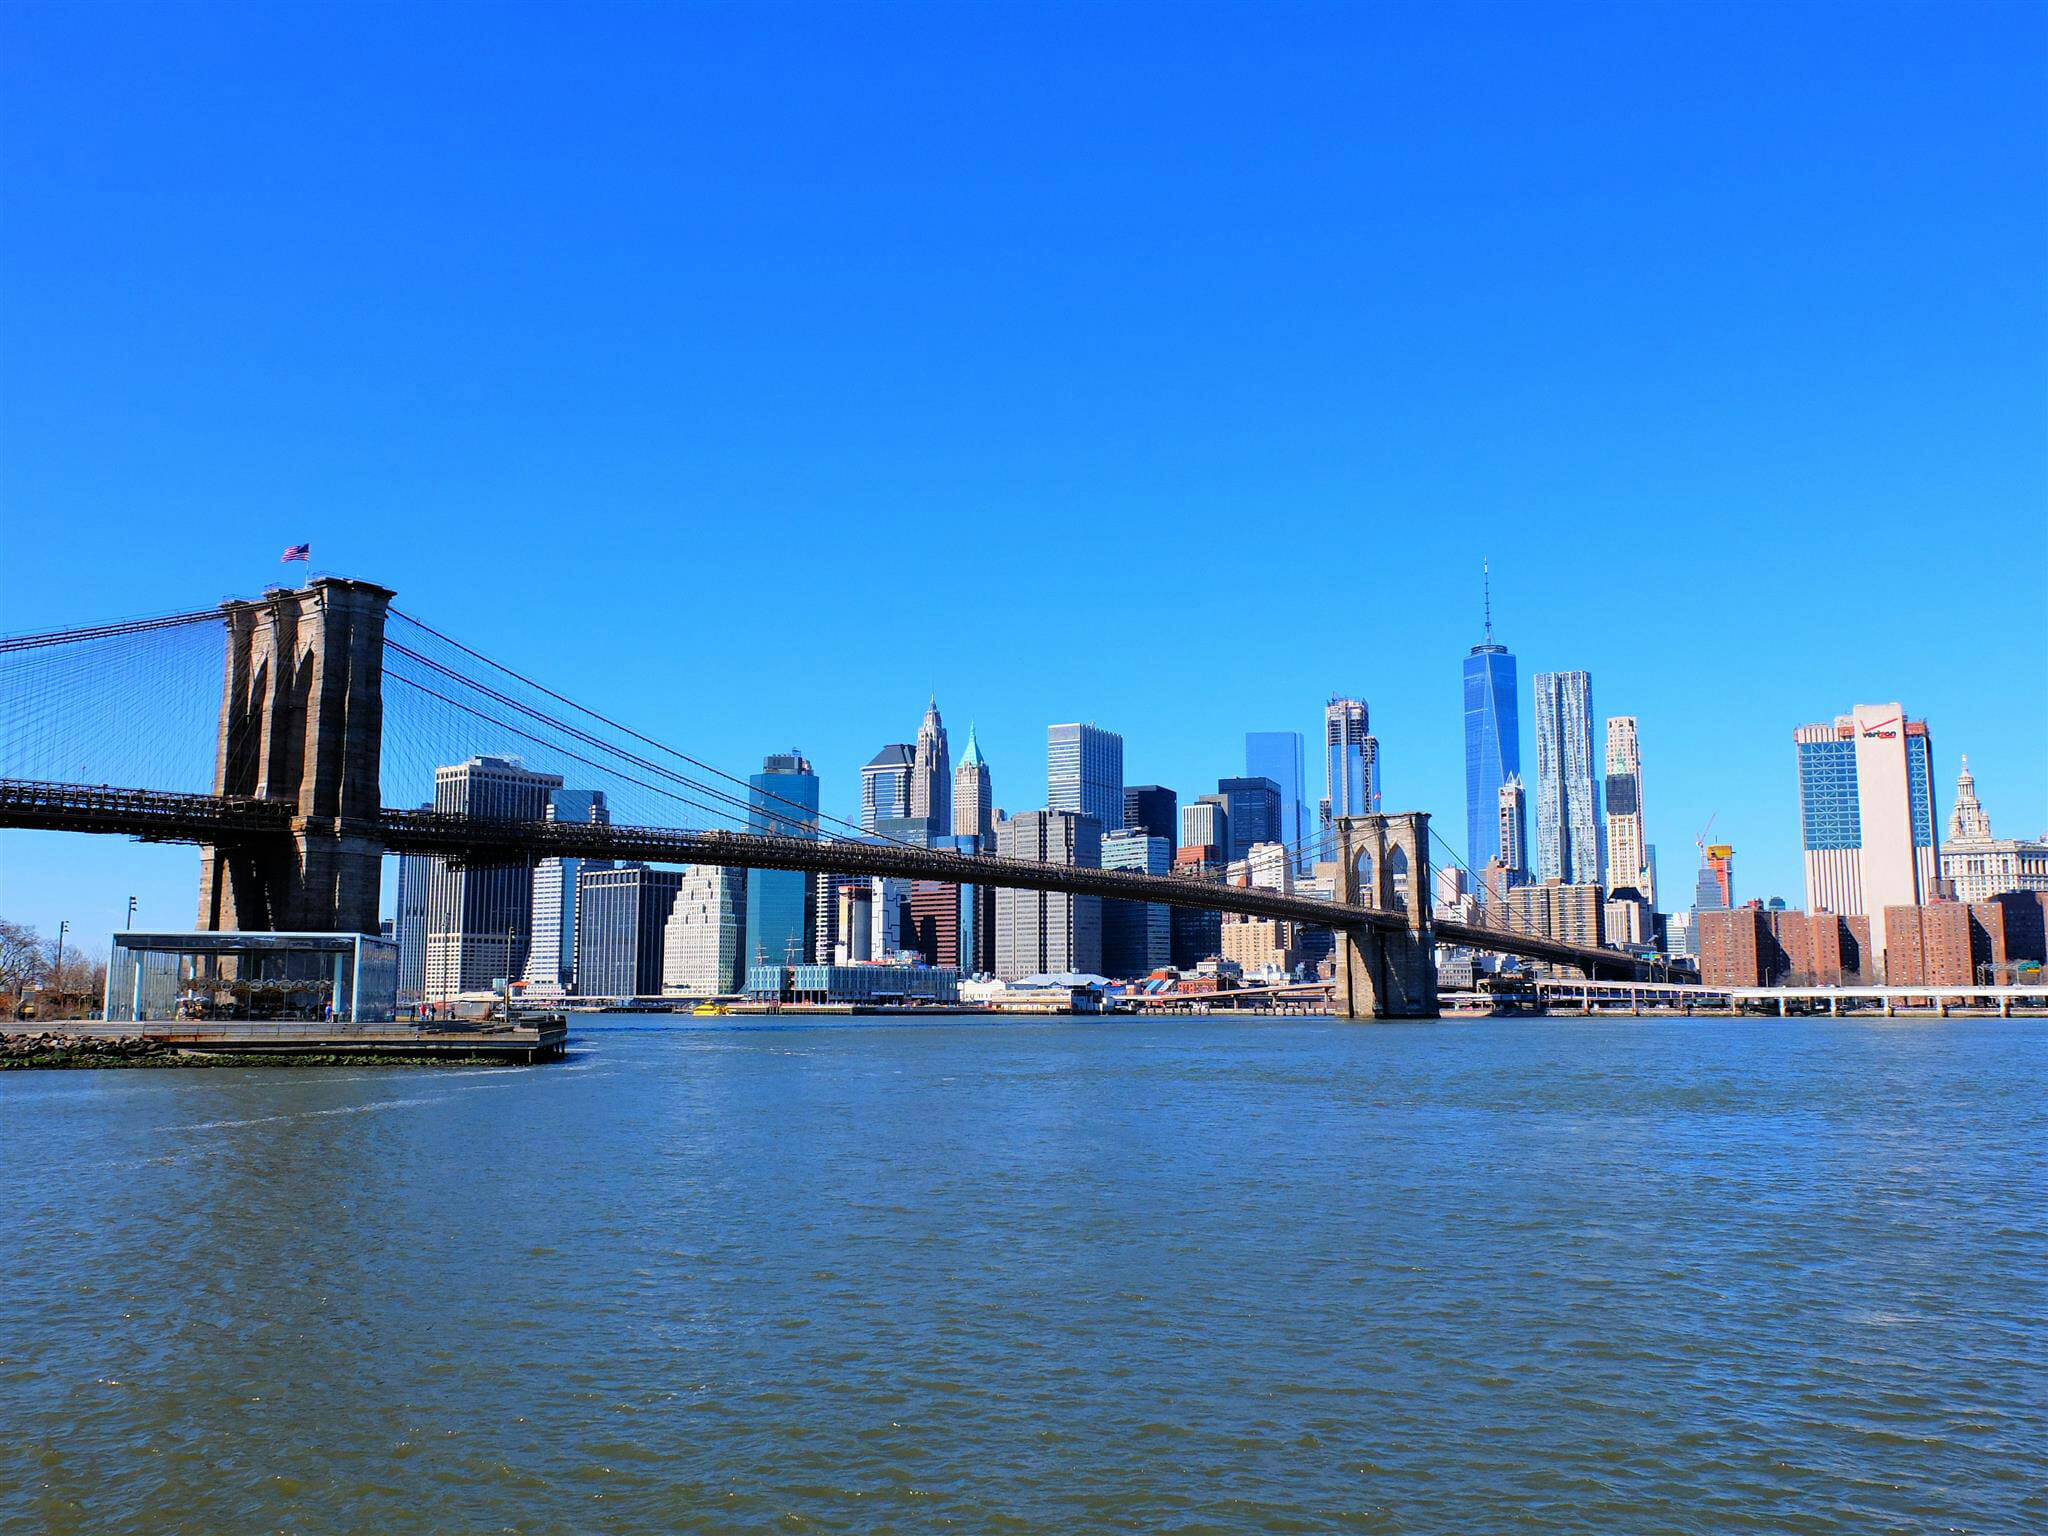 Brooklyn Bridge and NYC Skyline High Quality Wallpaper